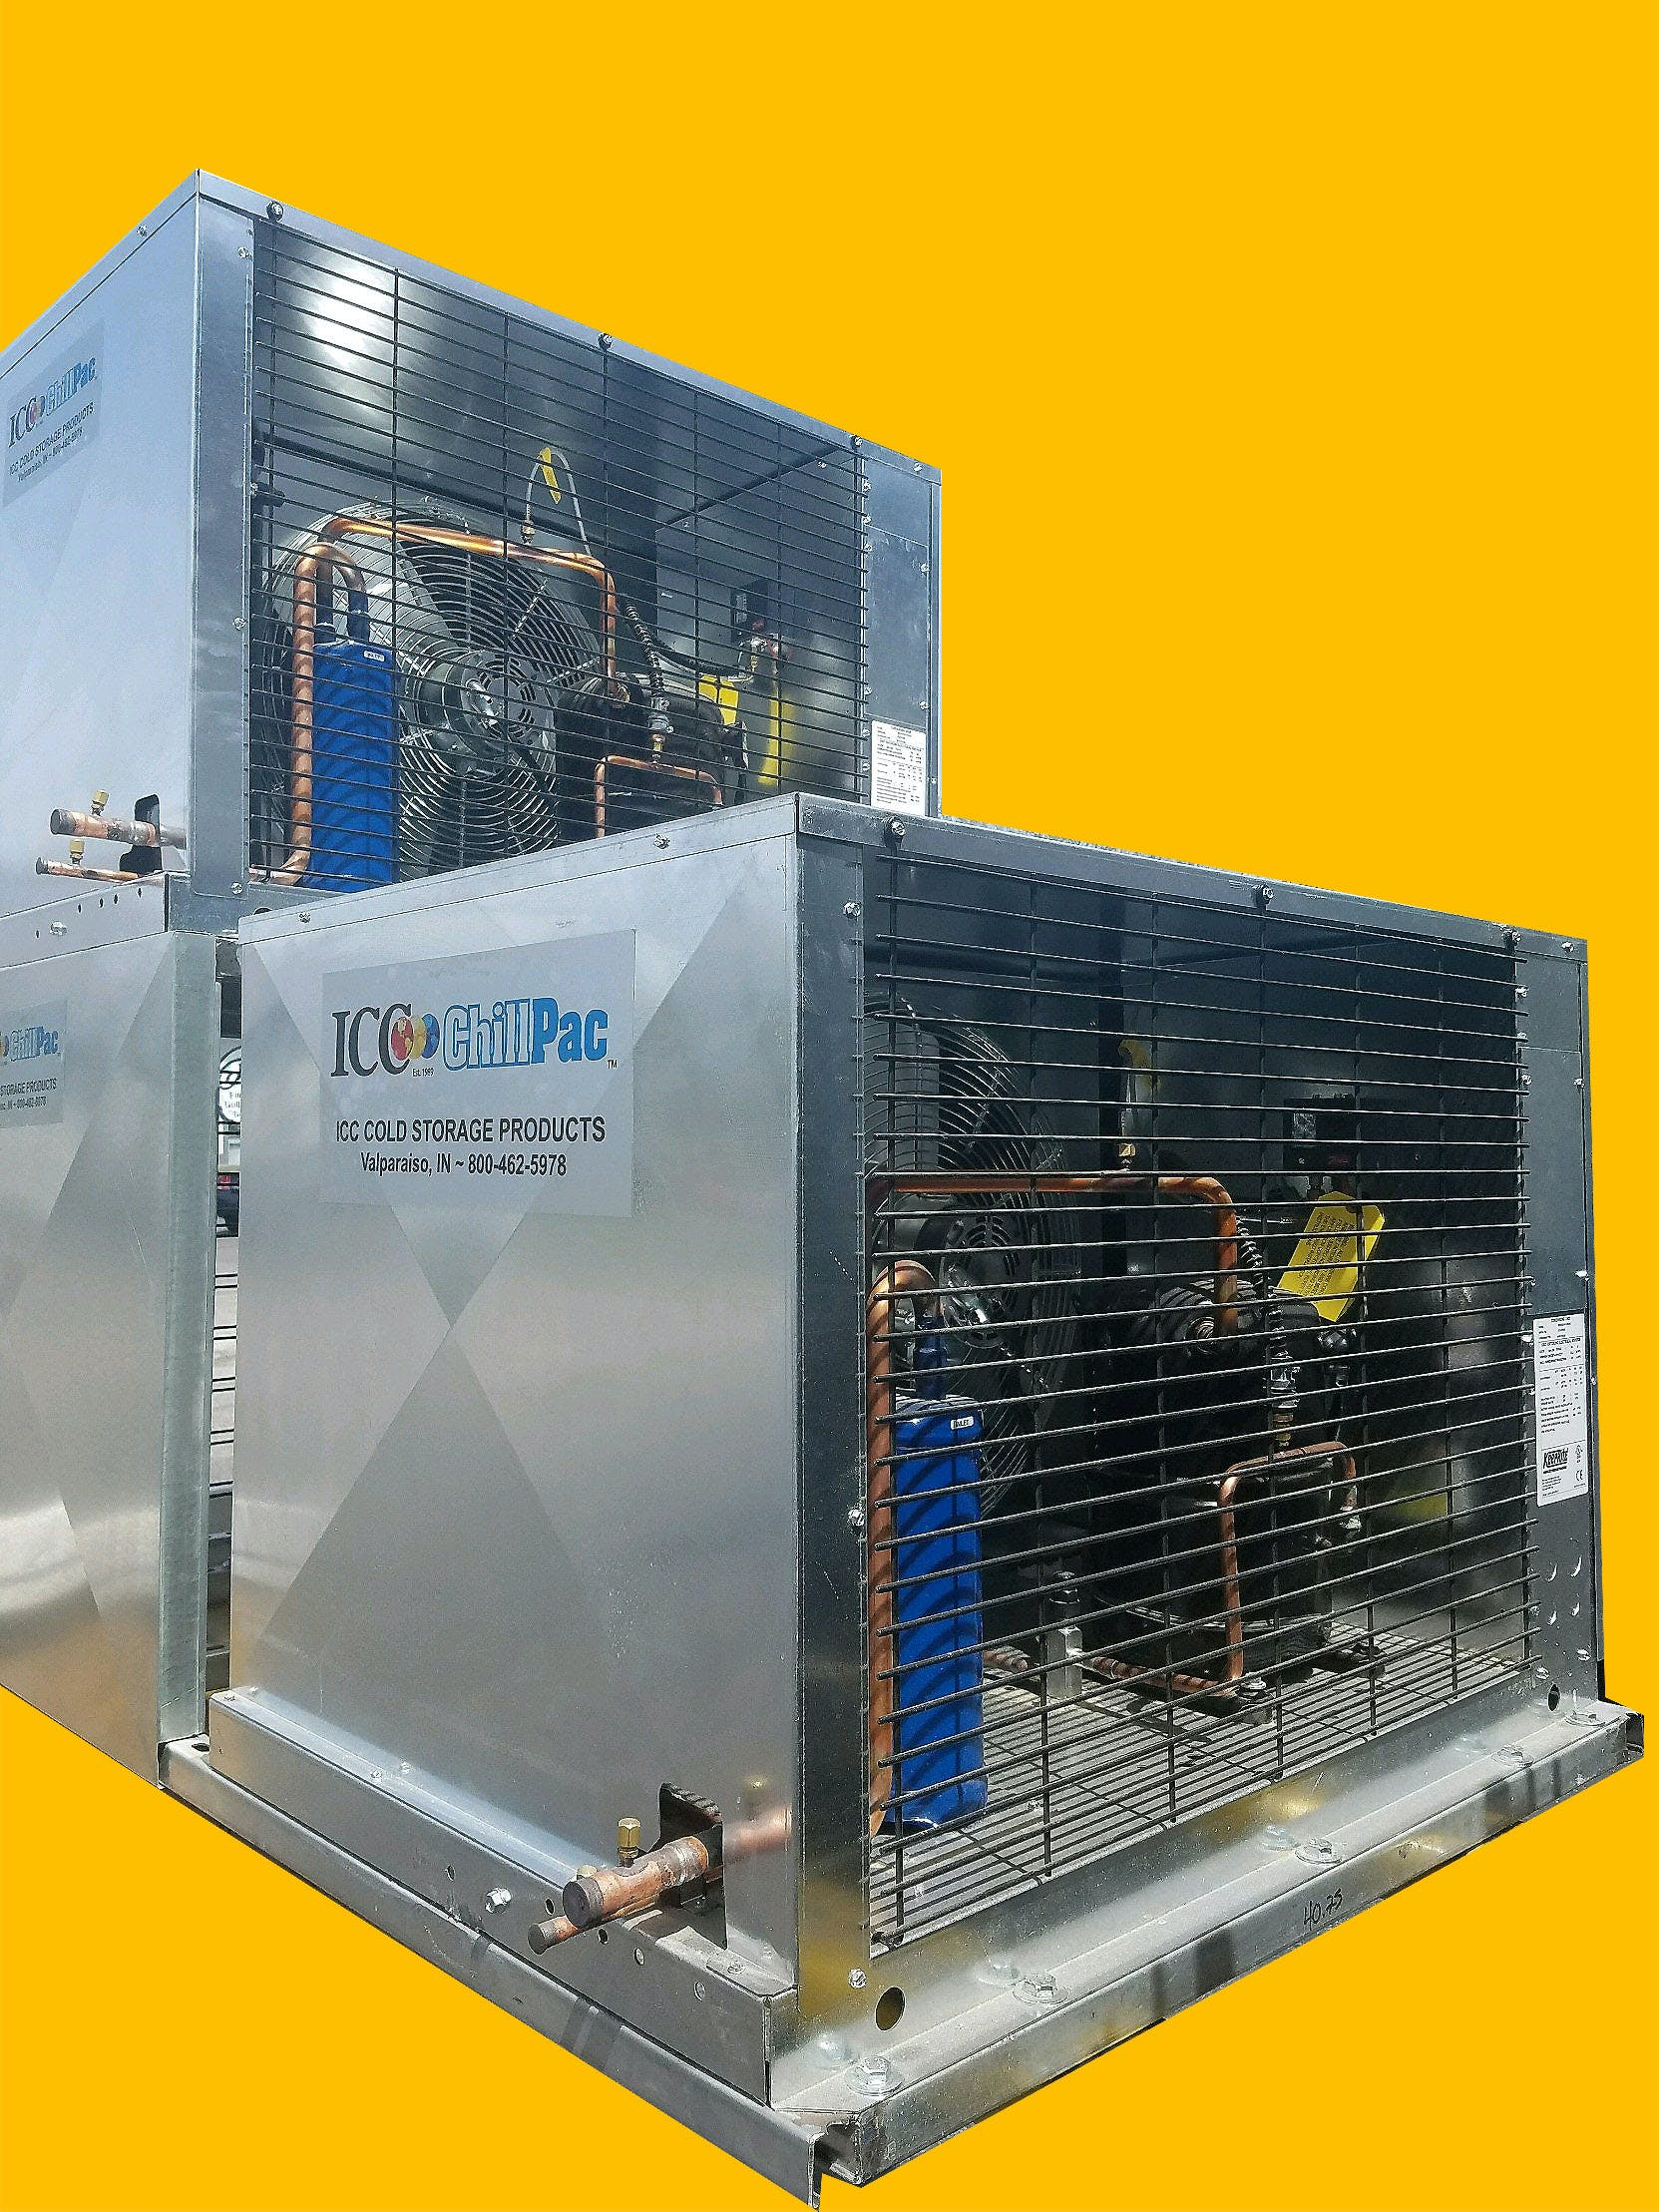 Custom-Built Glycol Chillers from 3/4 HP to 100 HP Glycol chiller sold by ICC Cold Storage Products